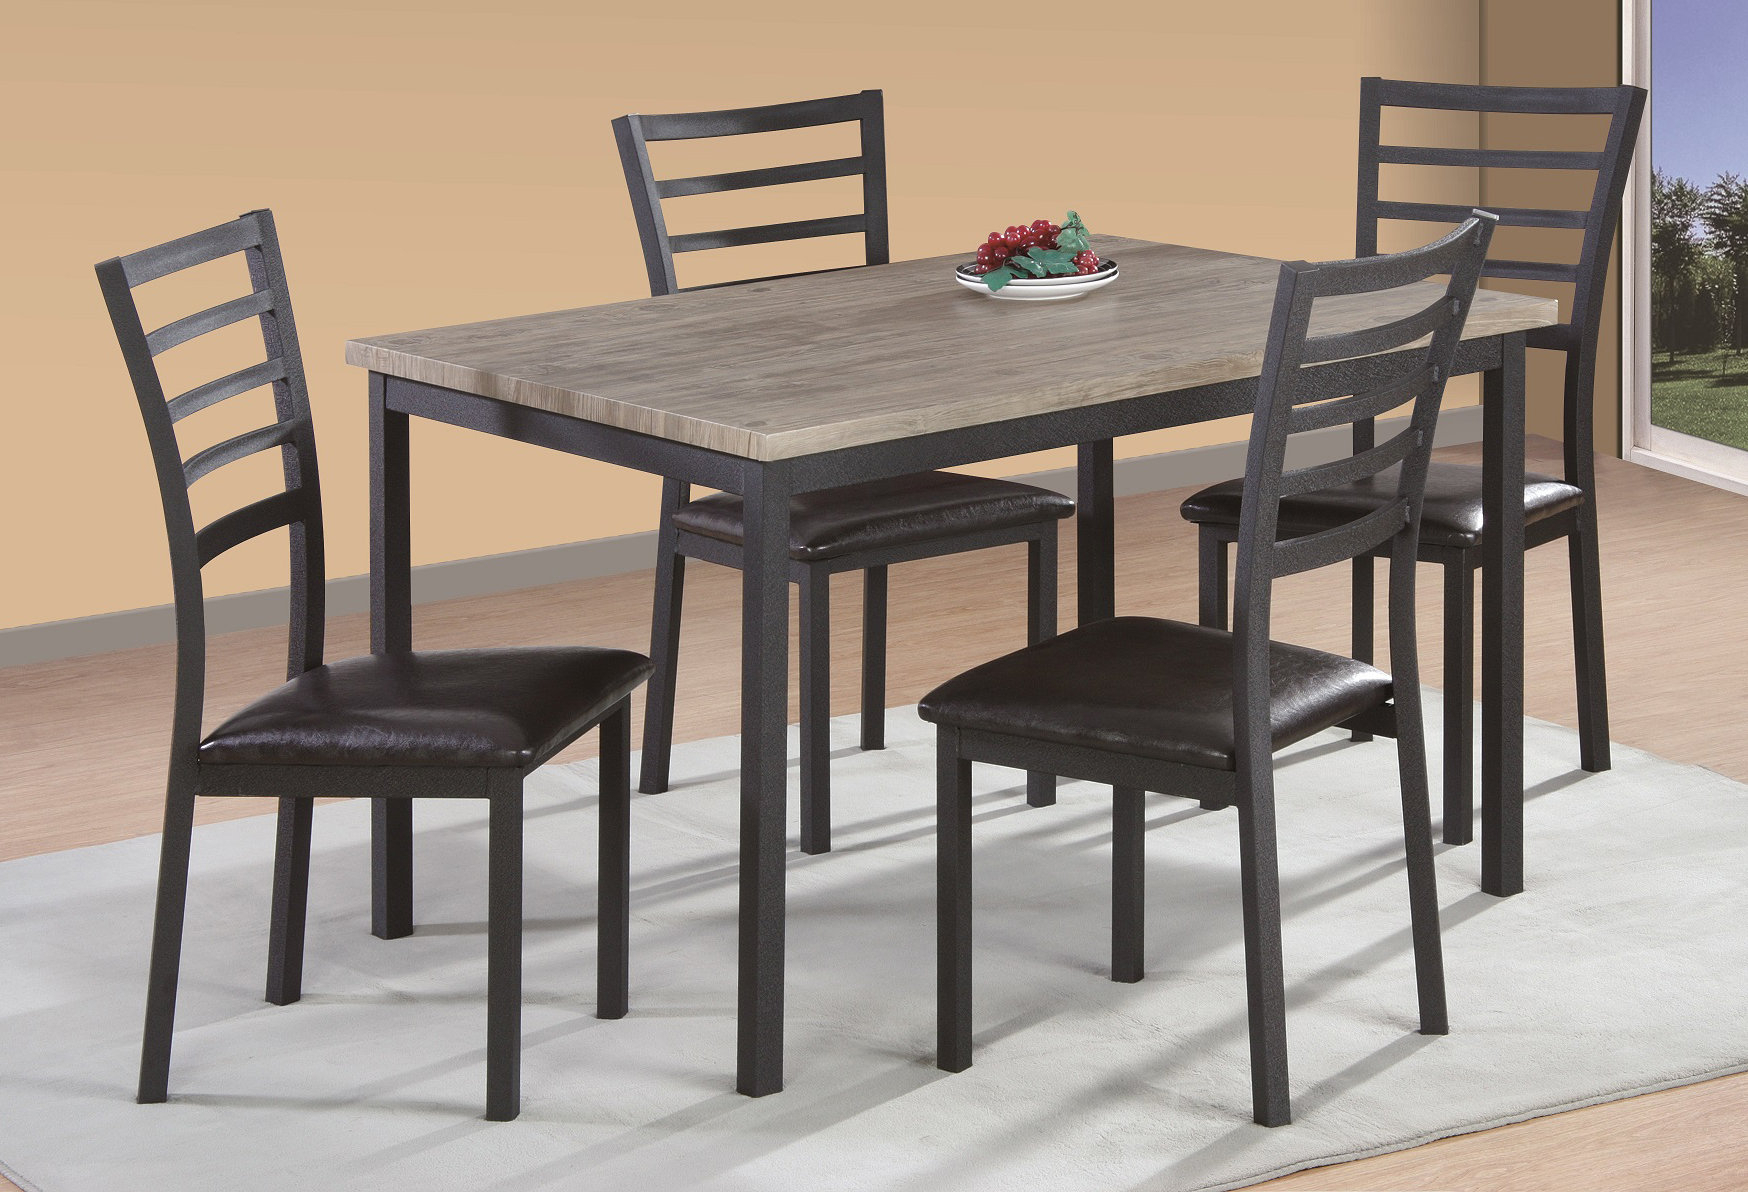 Frankie 5 Piece Dining Set Pertaining To Recent Reinert 5 Piece Dining Sets (View 3 of 20)